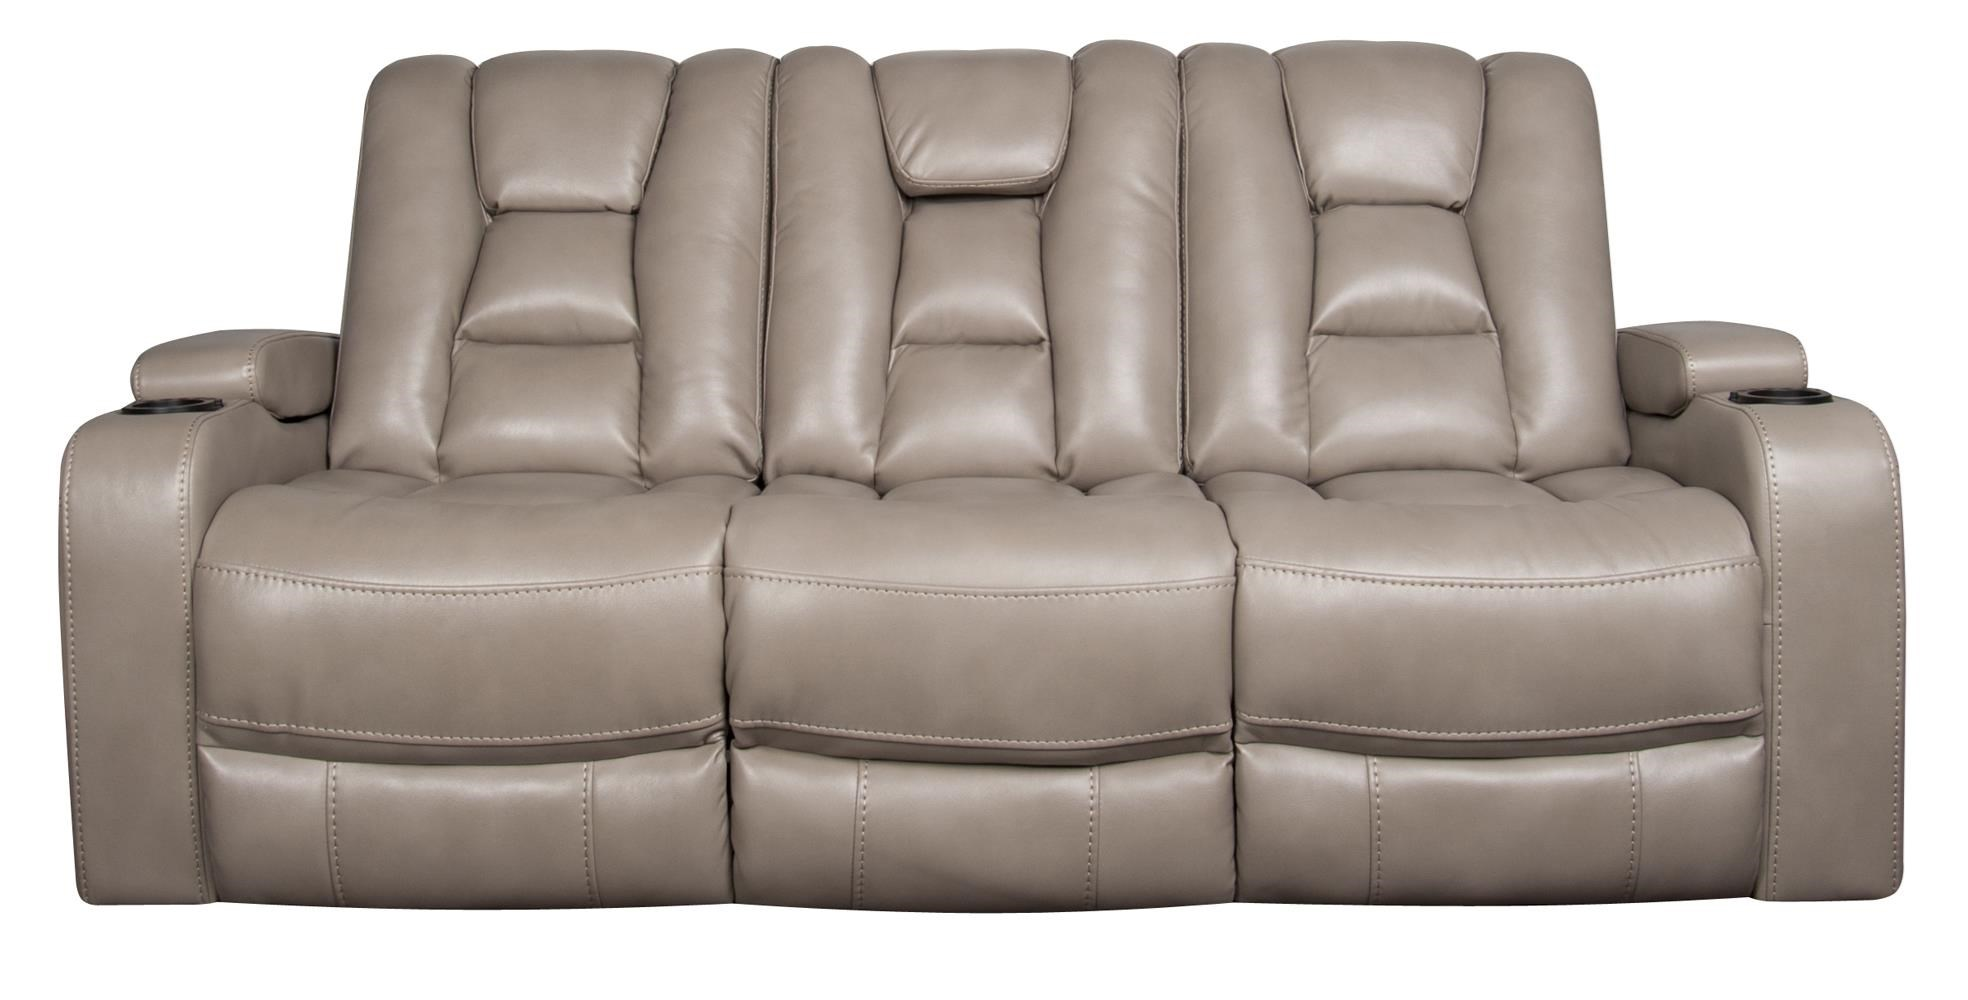 Rhinehart Power Sofa with Headrest